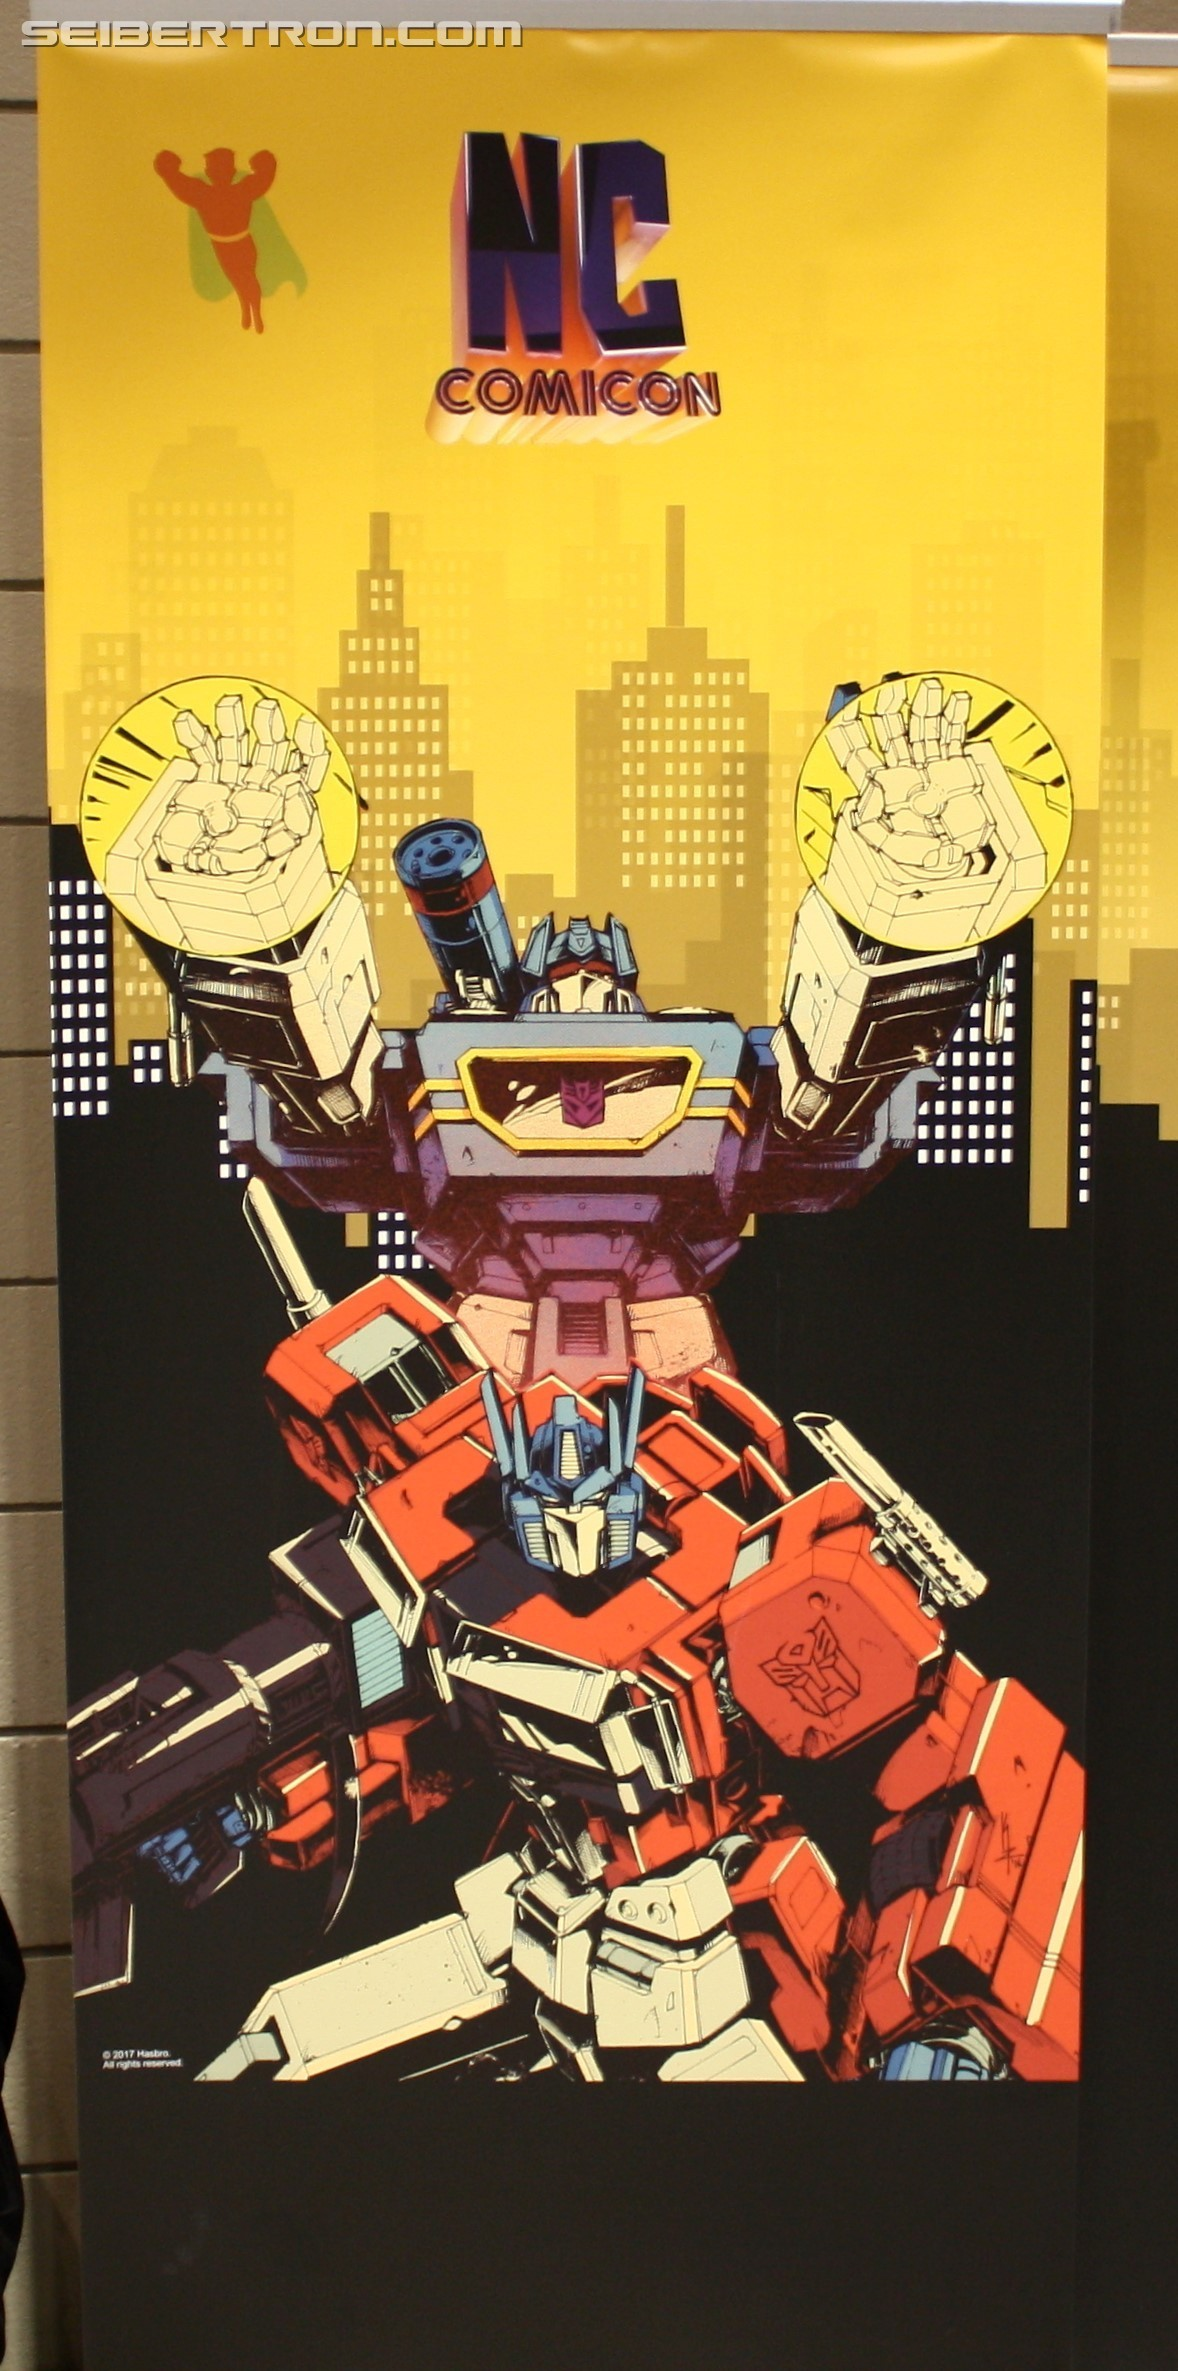 """Transformers News: Twincast / Podcast Episode #170 """"NC Comicon 2017"""" featuring IDW's Barber, Hedgecock, and Ryall!"""